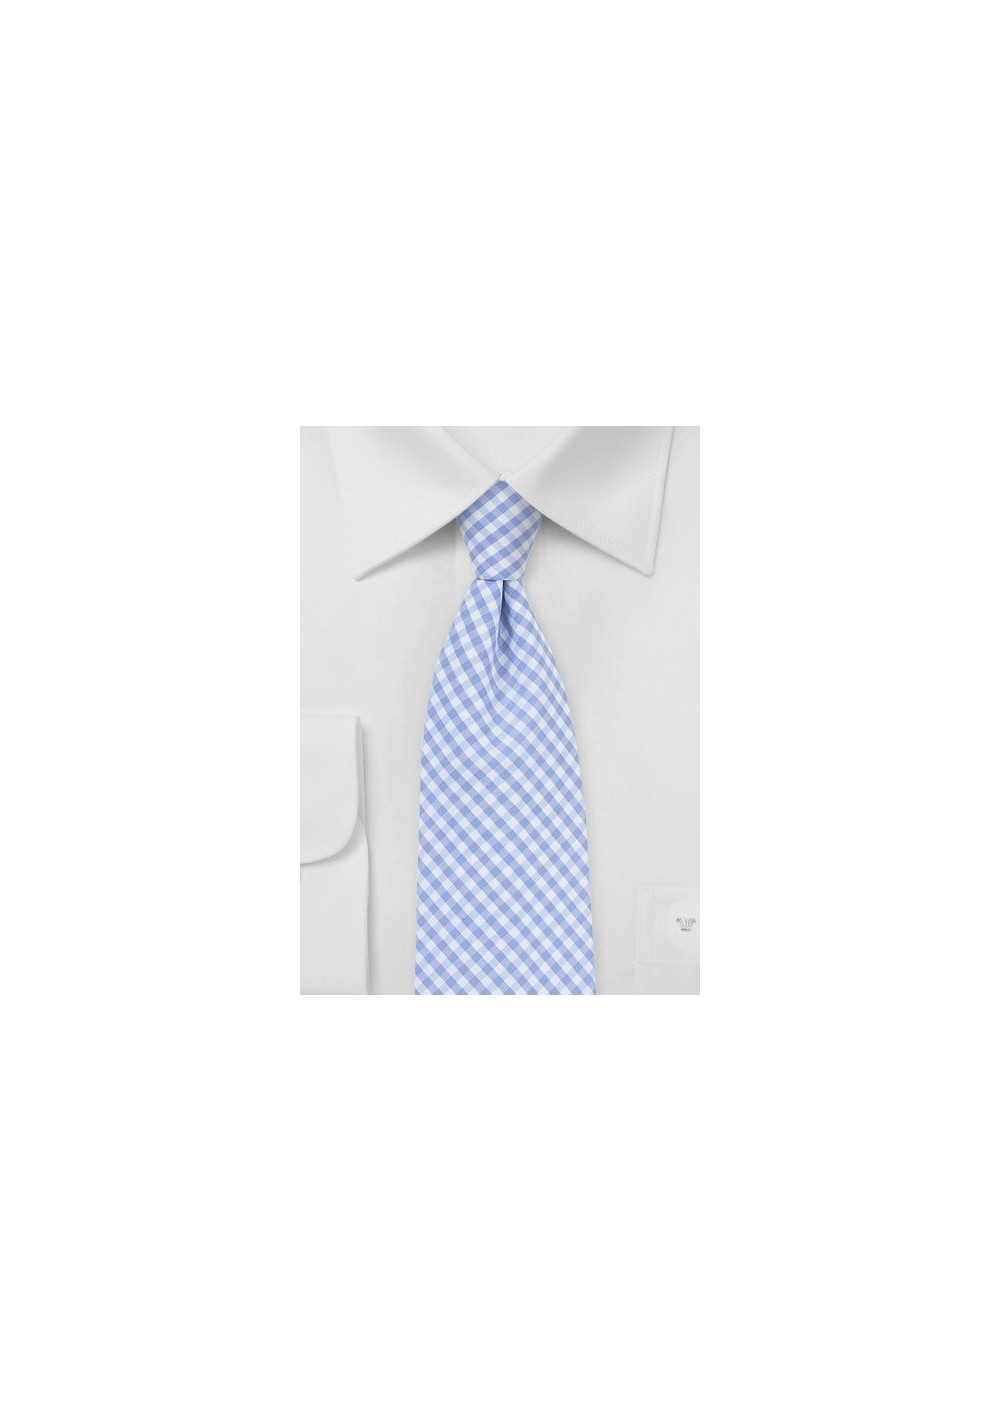 Baby Blue Cotton Tie with Gingham Check